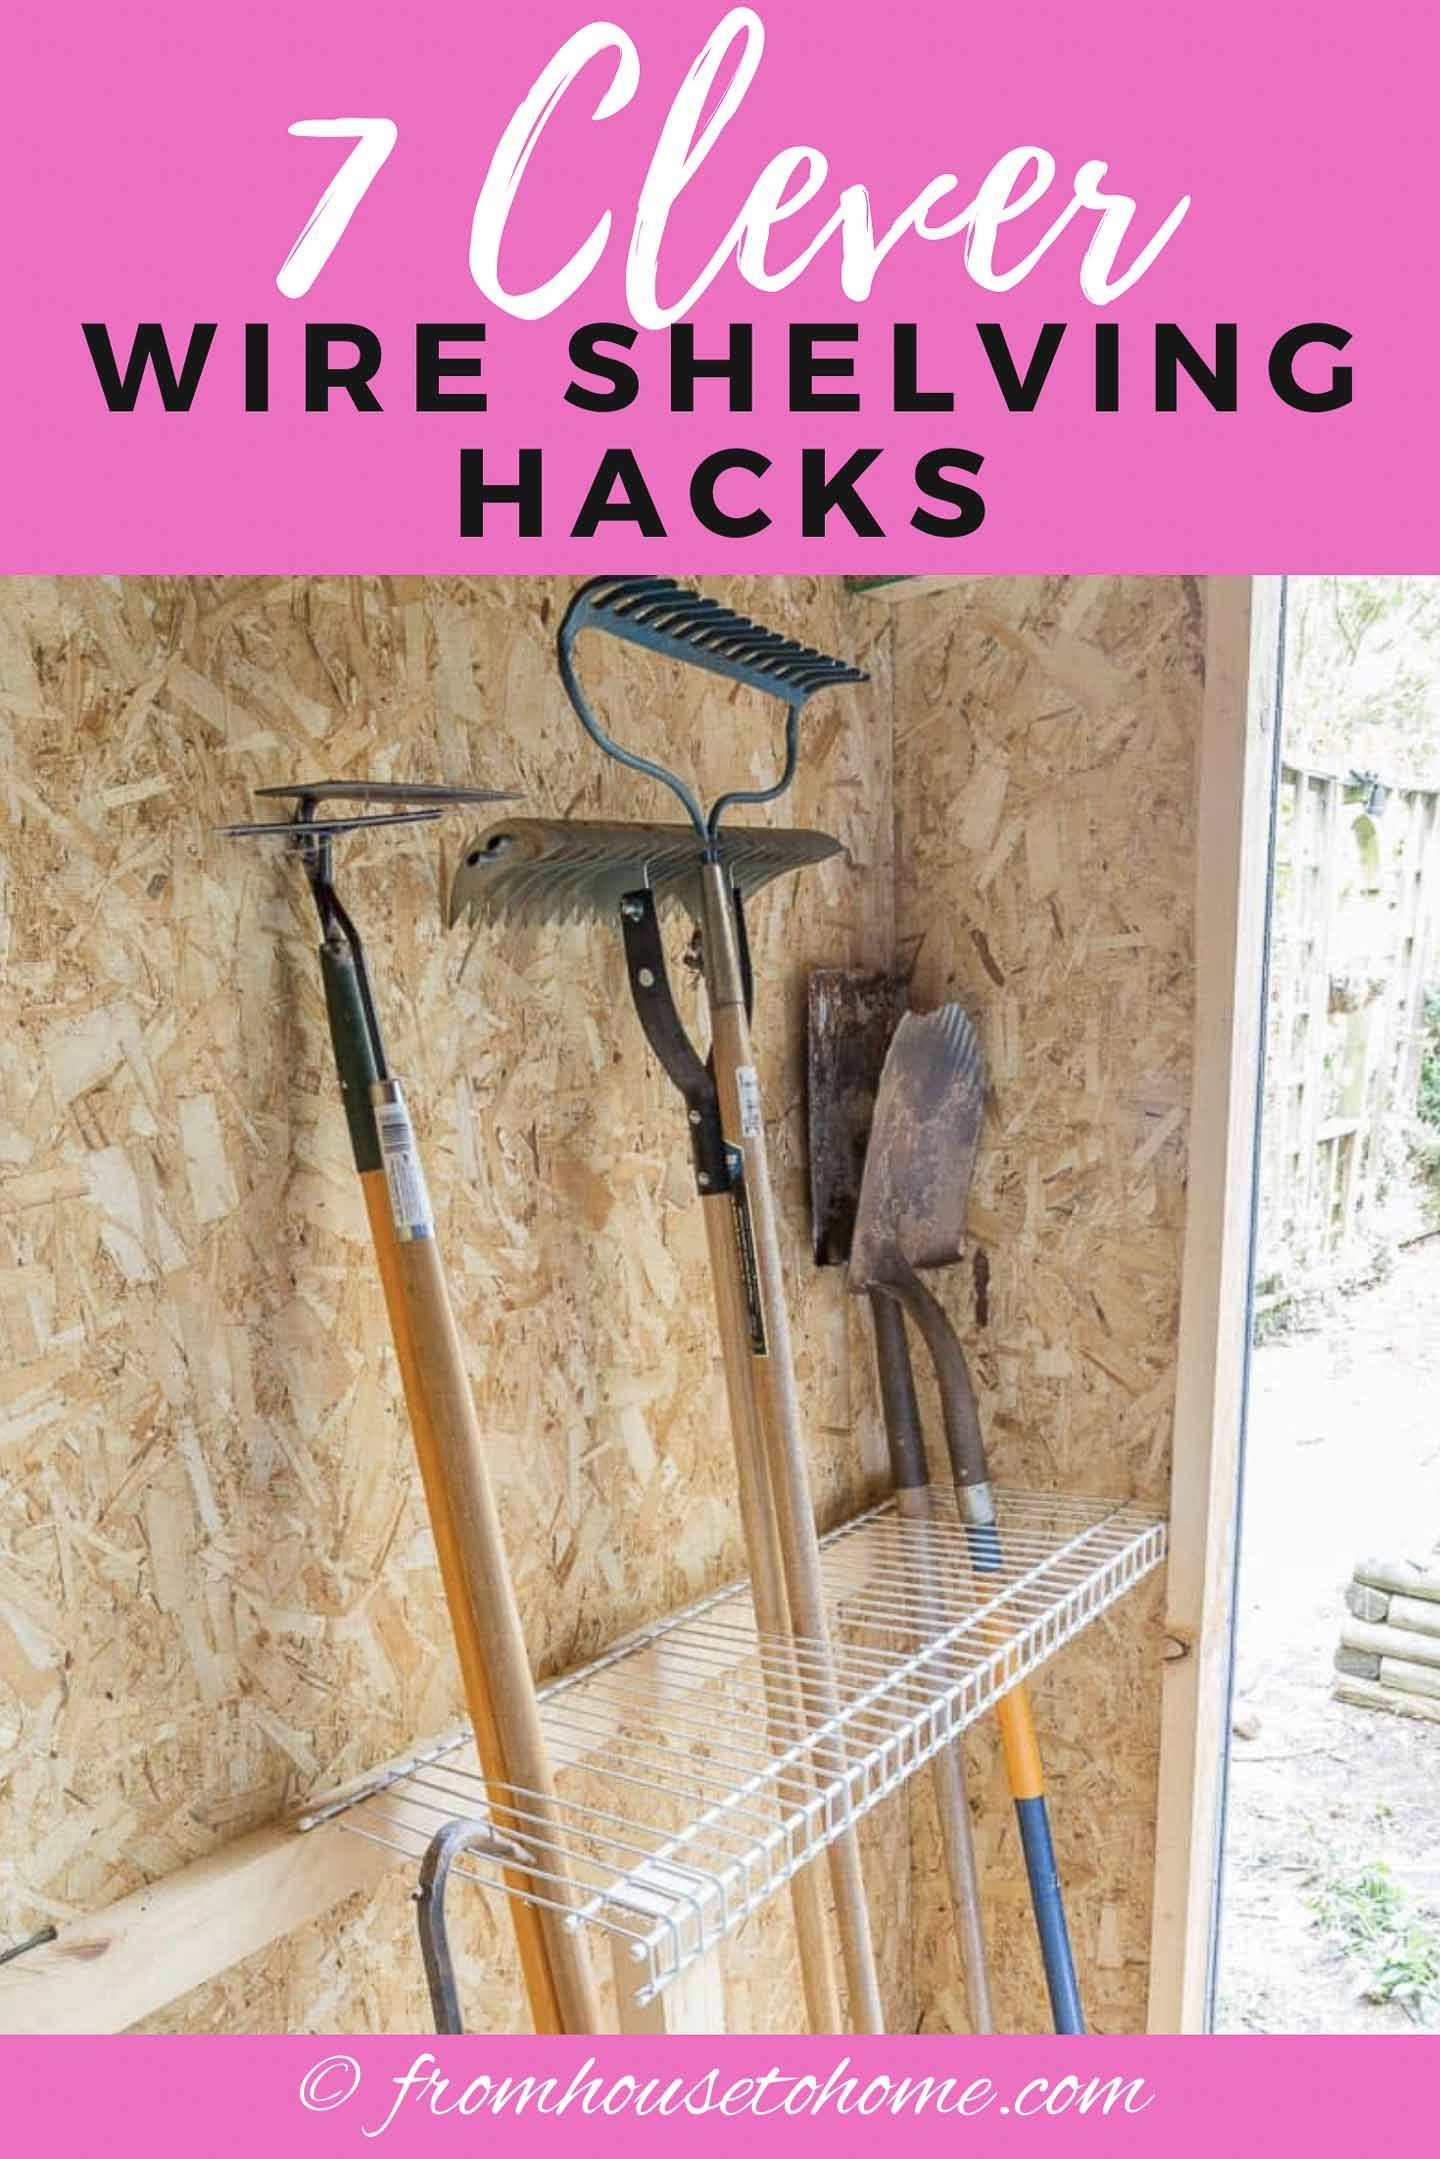 7 Clever Wire Shelving Hacks That Will Get You Organized In 2020